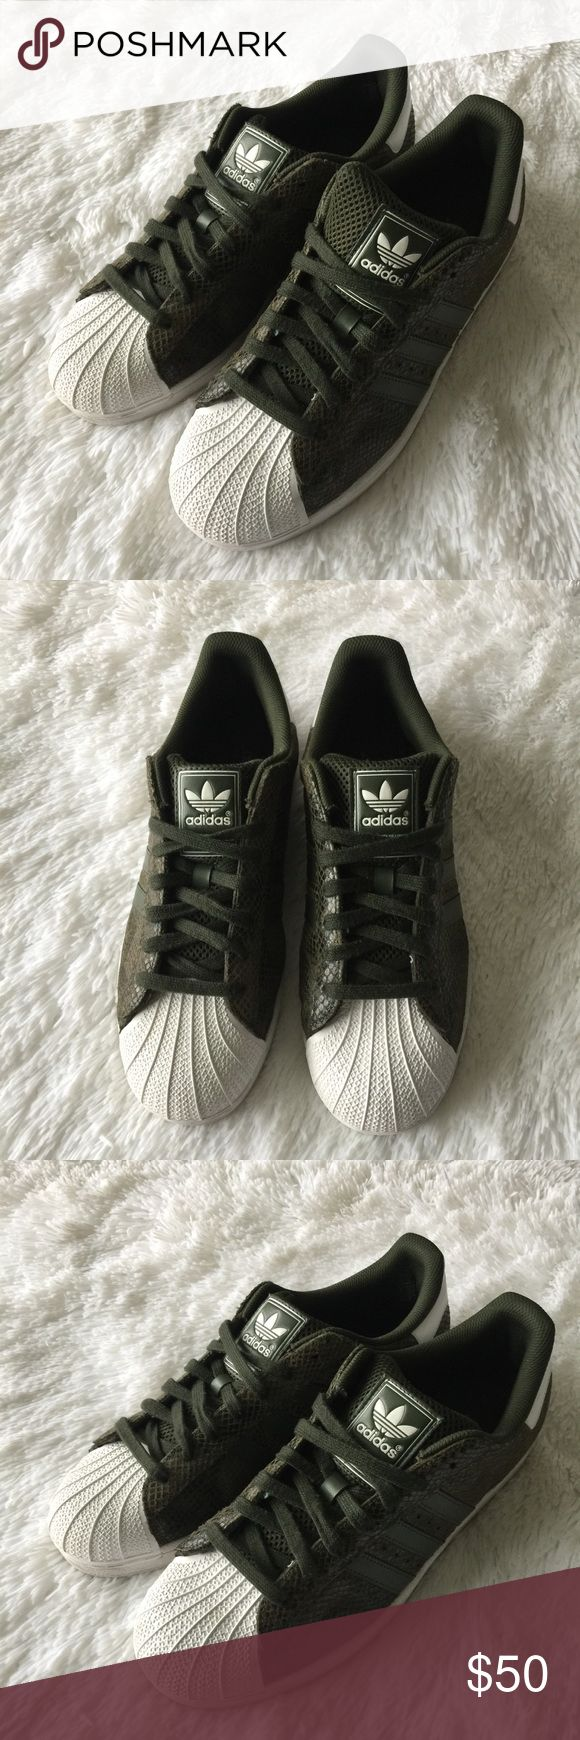 Adidas Superstar Shell Toe Pre-loved & in Great Condition / Snakeskin /  Camouflage / Olive Green & Black adidas Shoes Sneakers